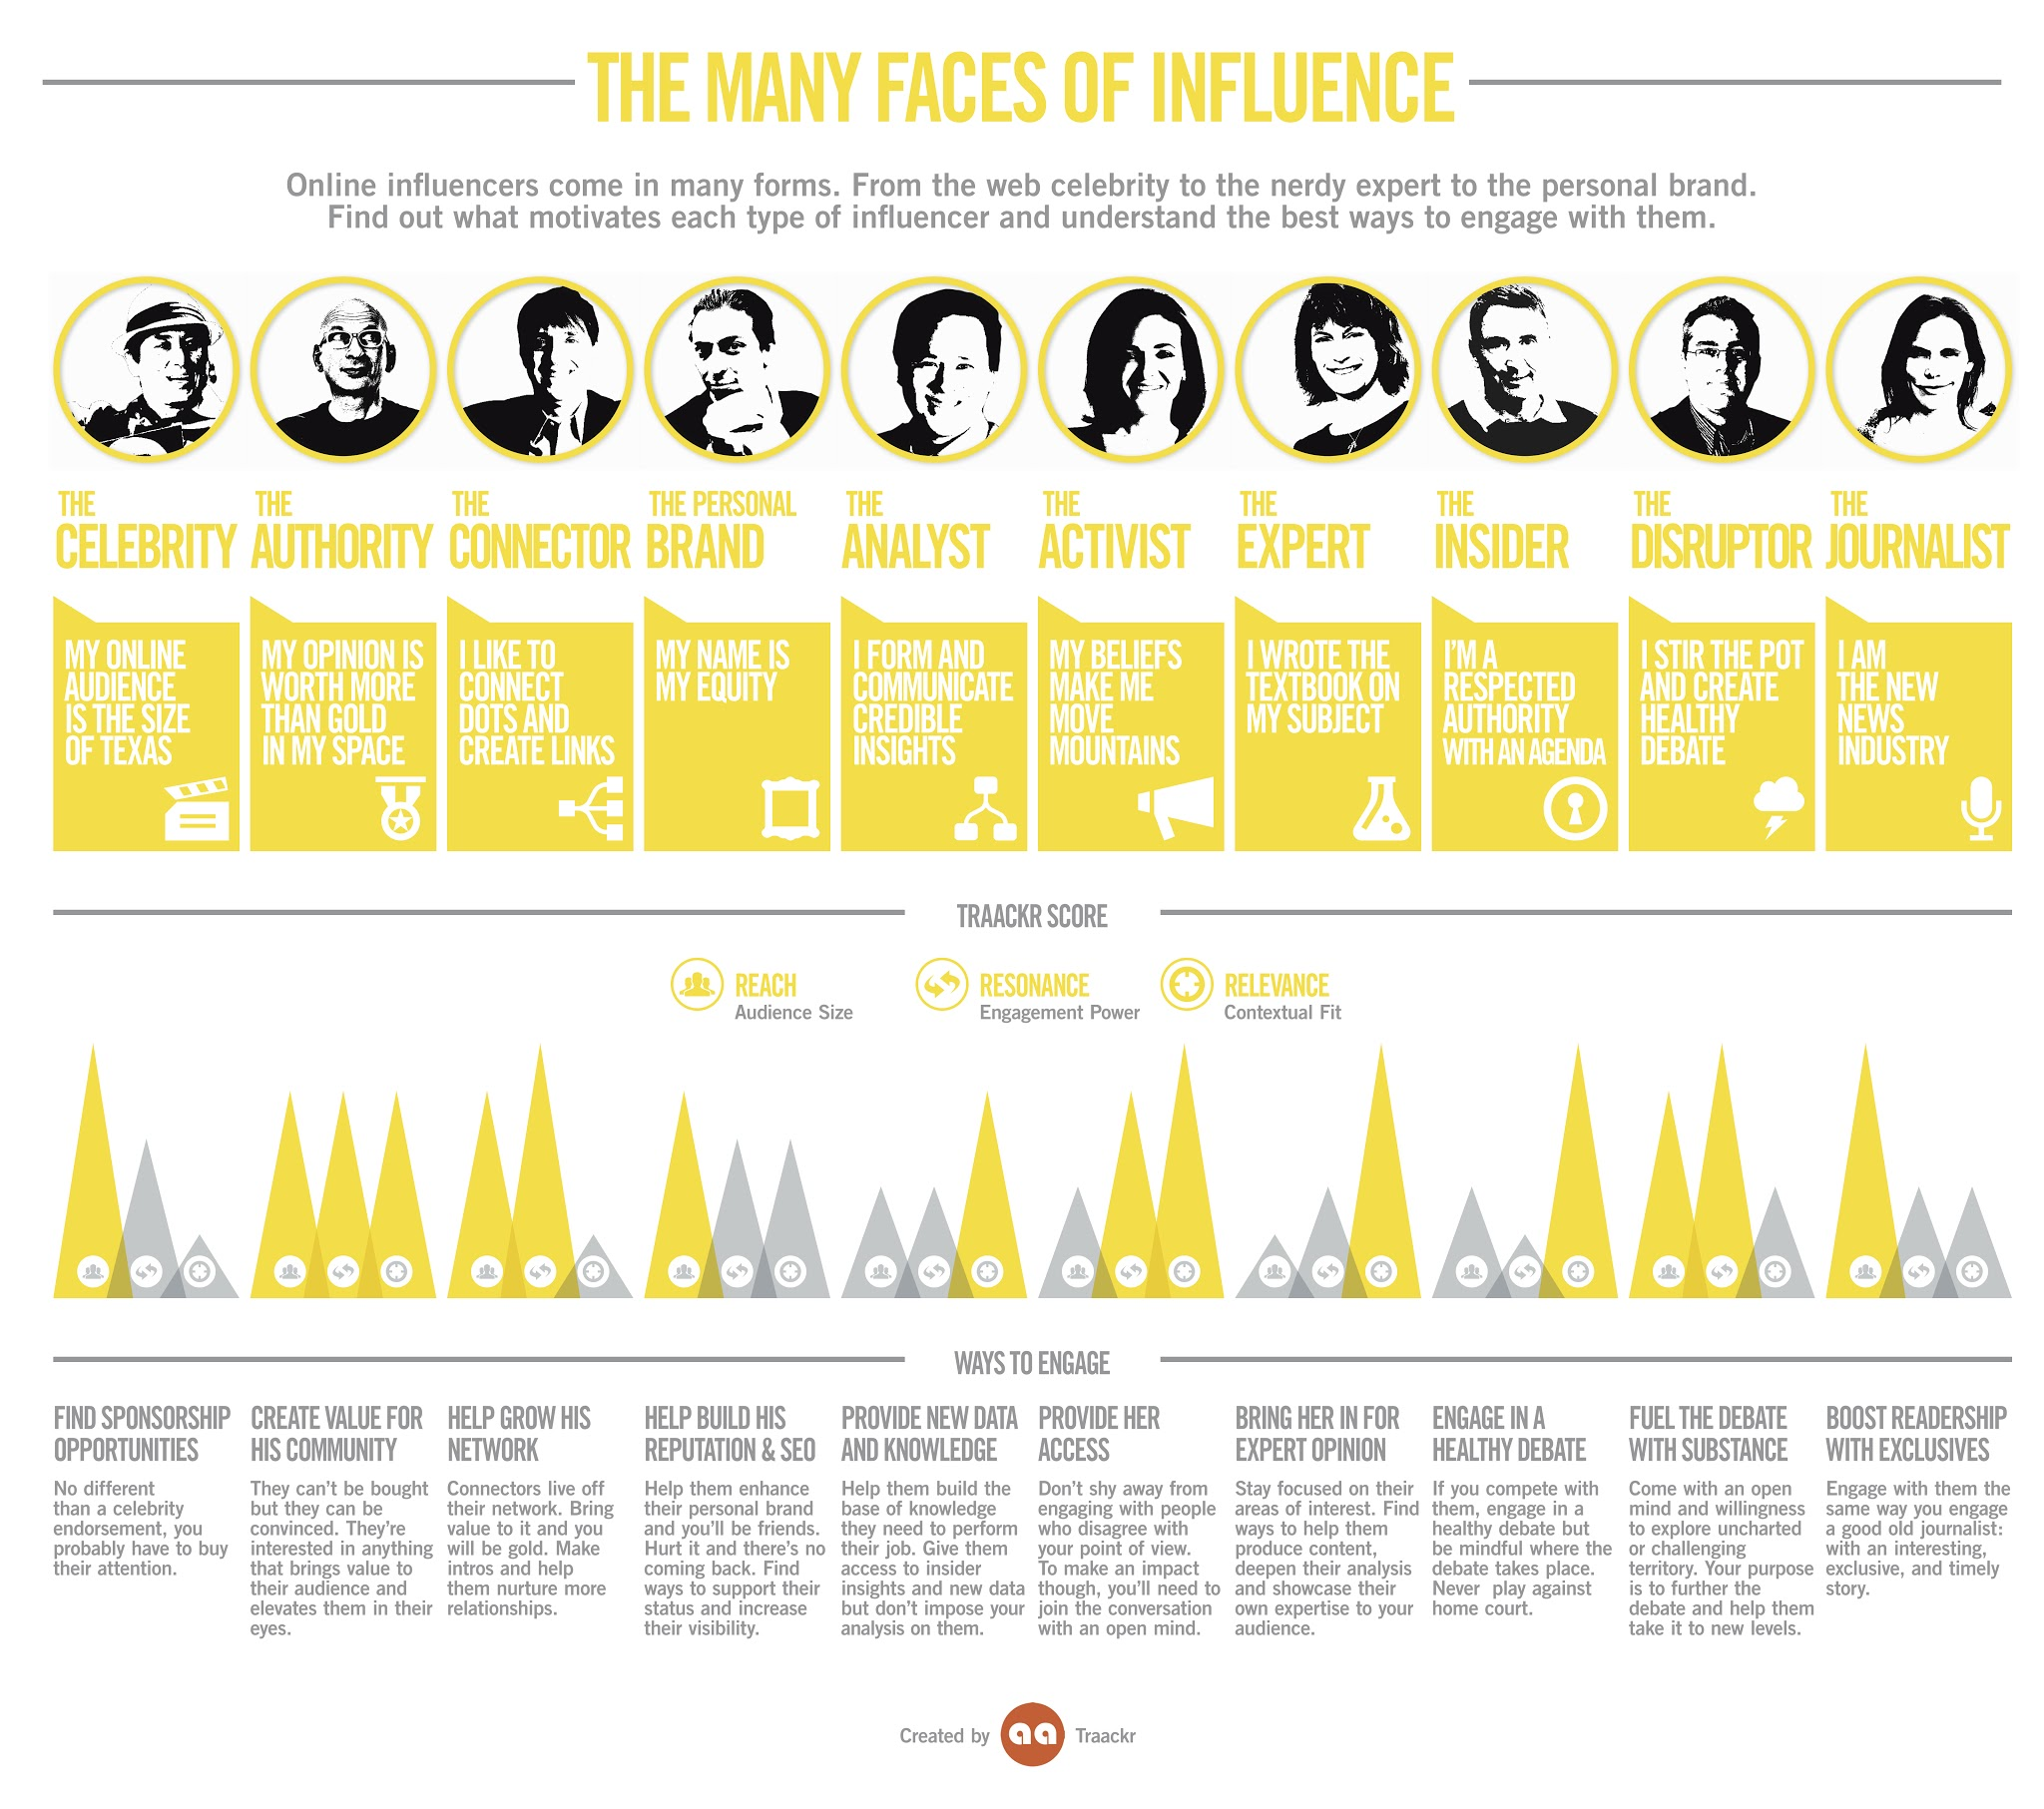 The Many Faces of Influence - Top 10 Online Influencers - Best Ways To Engage Them [INFOGRAPHIC]